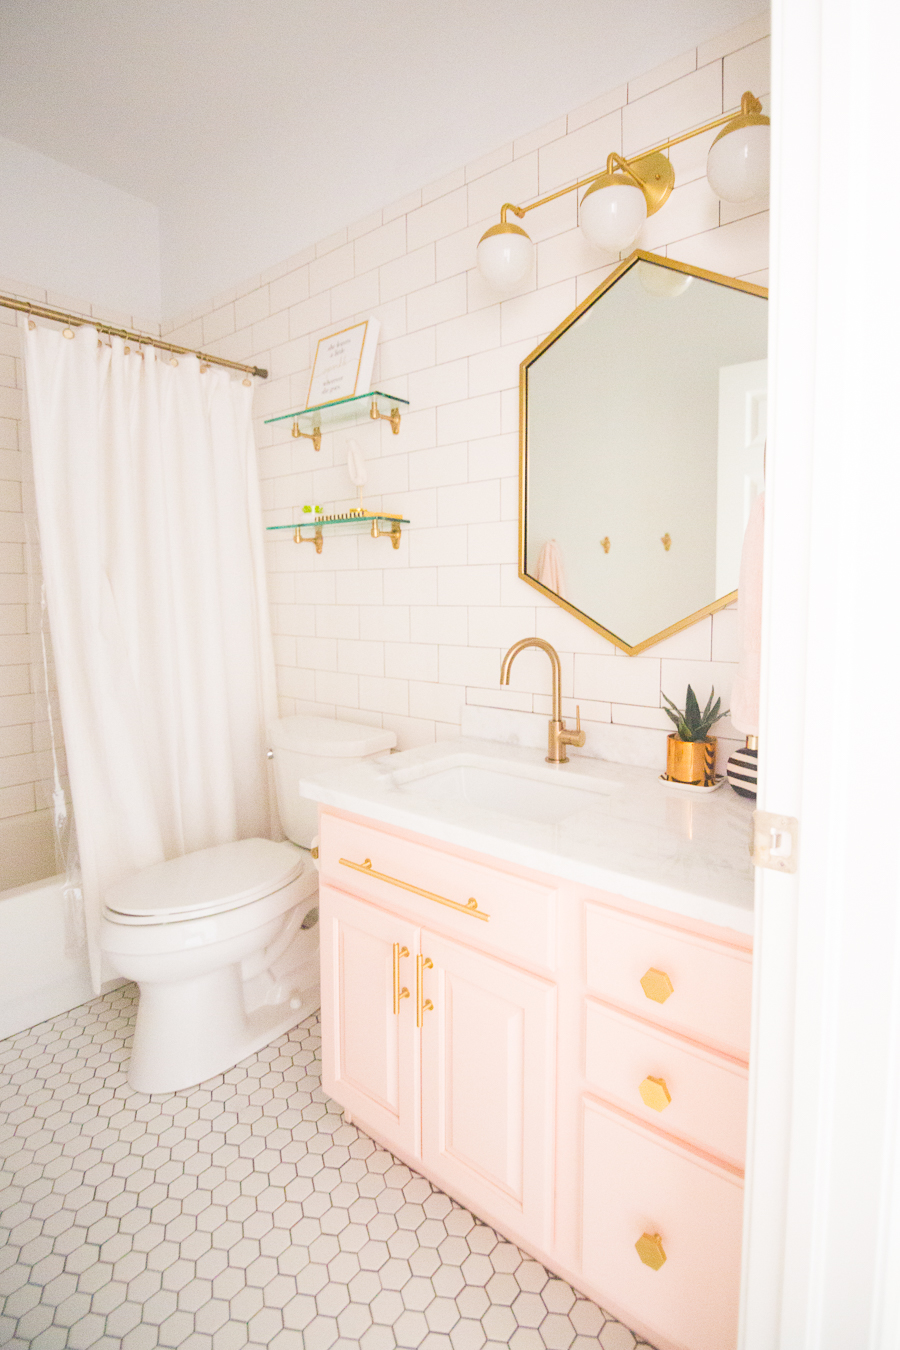 Modern Glam Blush S Bathroom Design Gold Hexagon Mirror Cabinets Hardware White Floor